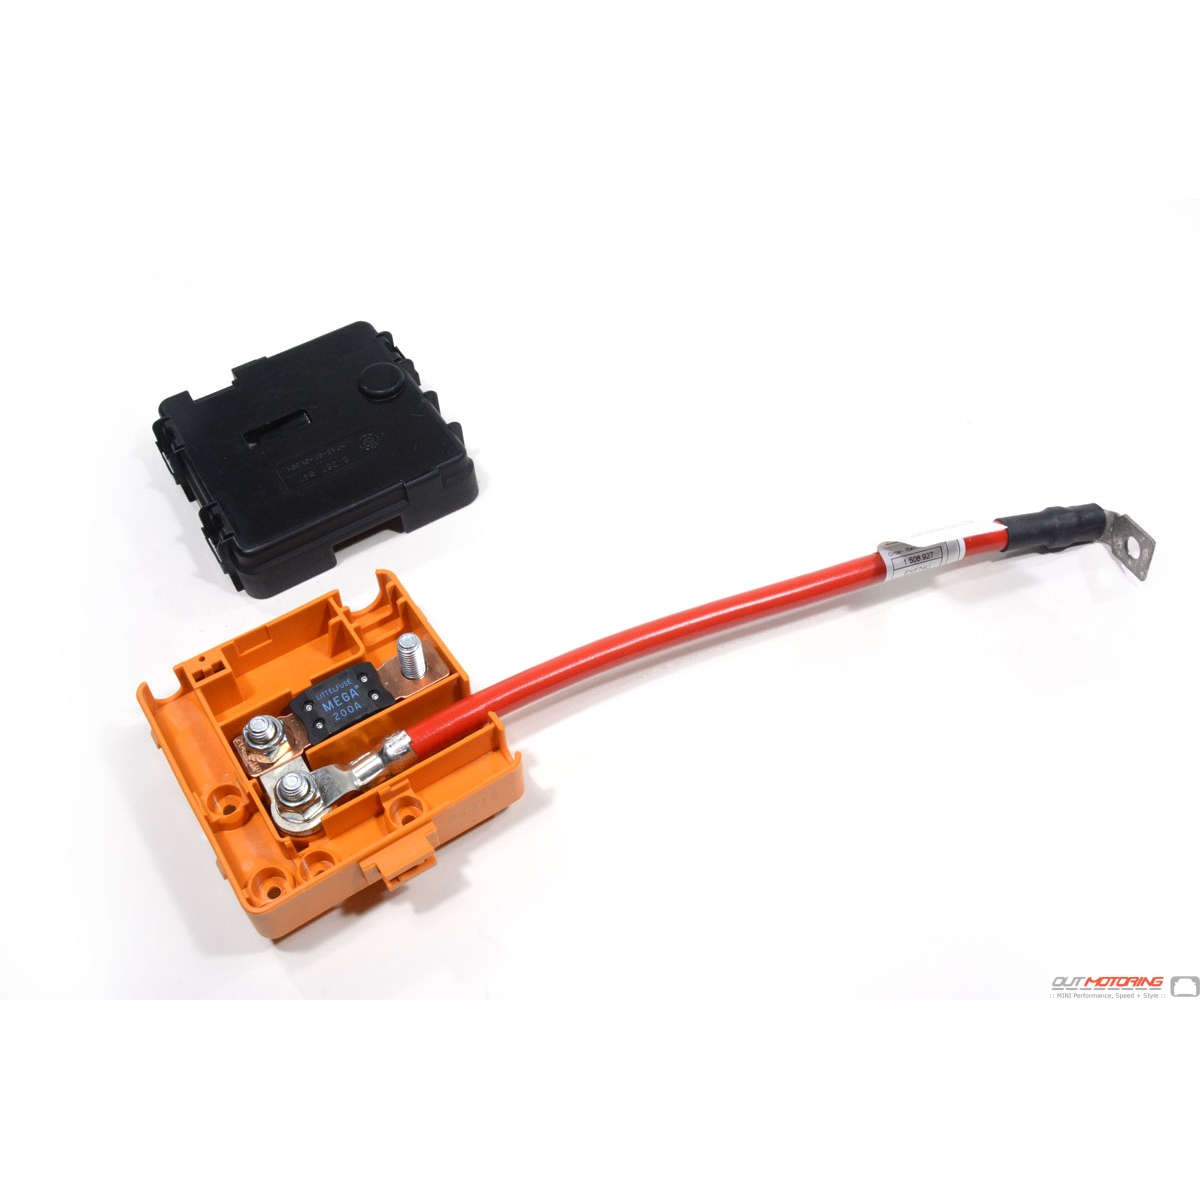 61131508927 Battery Cable And Terminal Box Mini Cooper